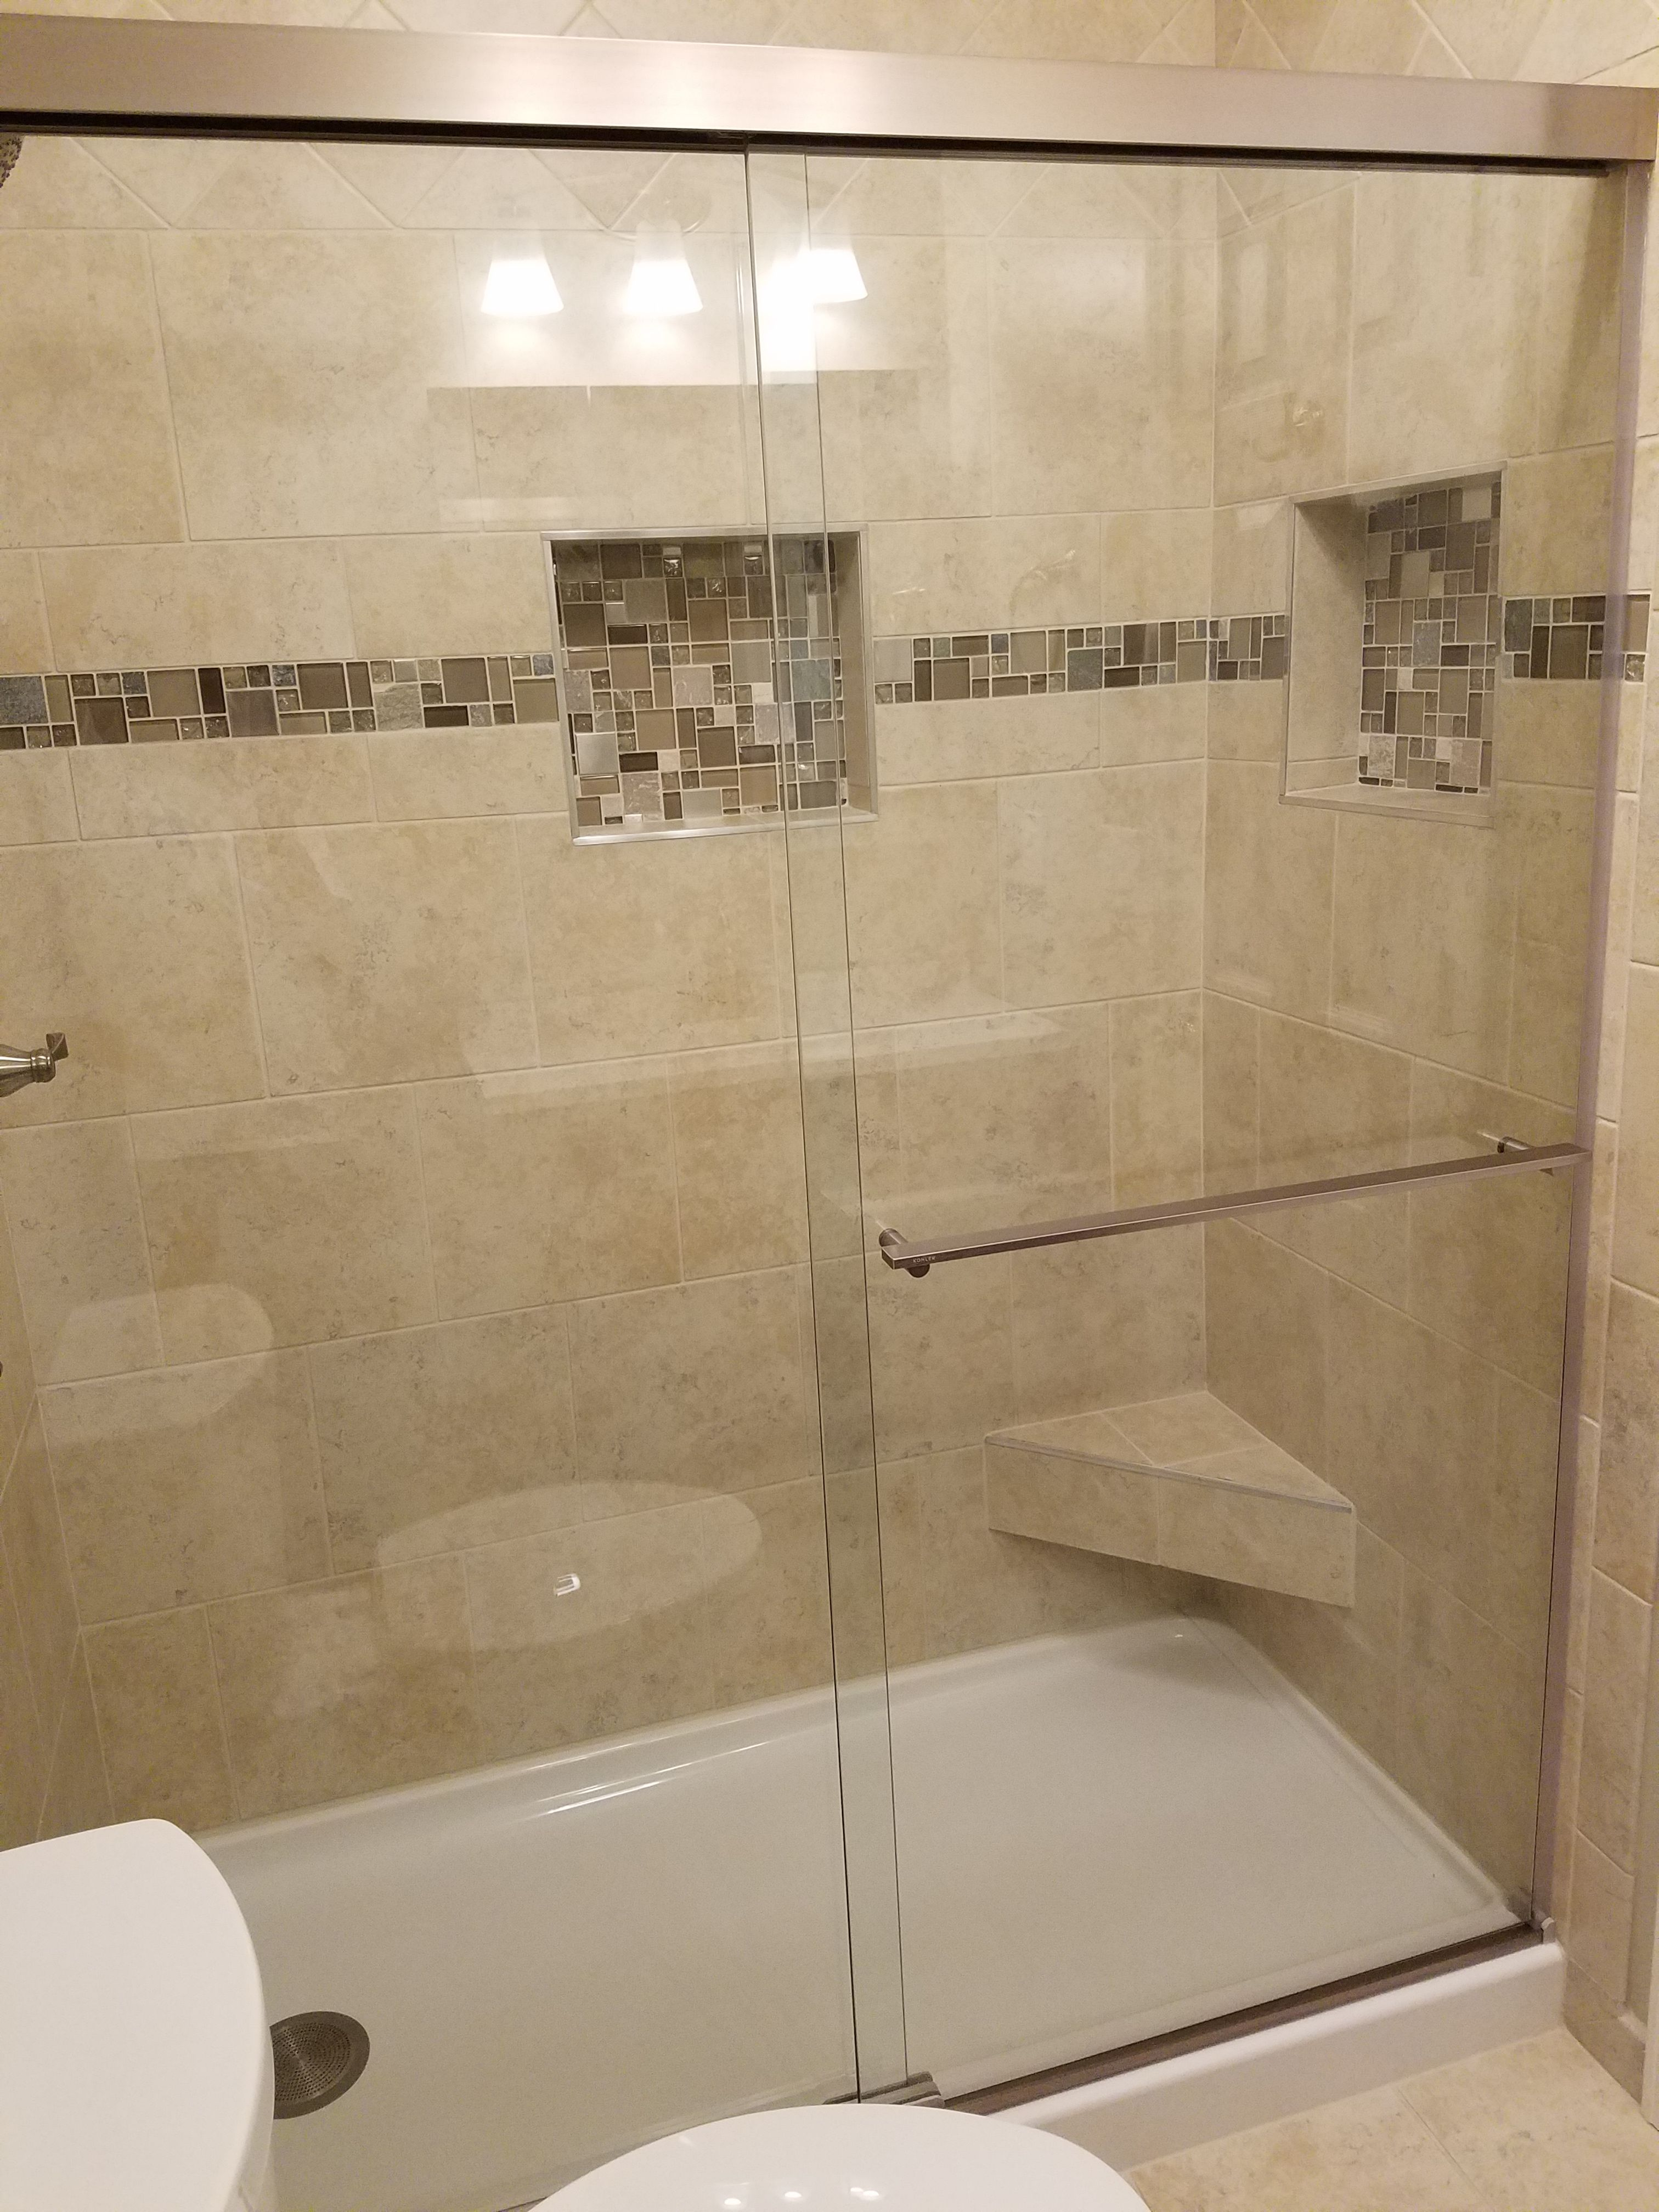 standing shower with beige tile and